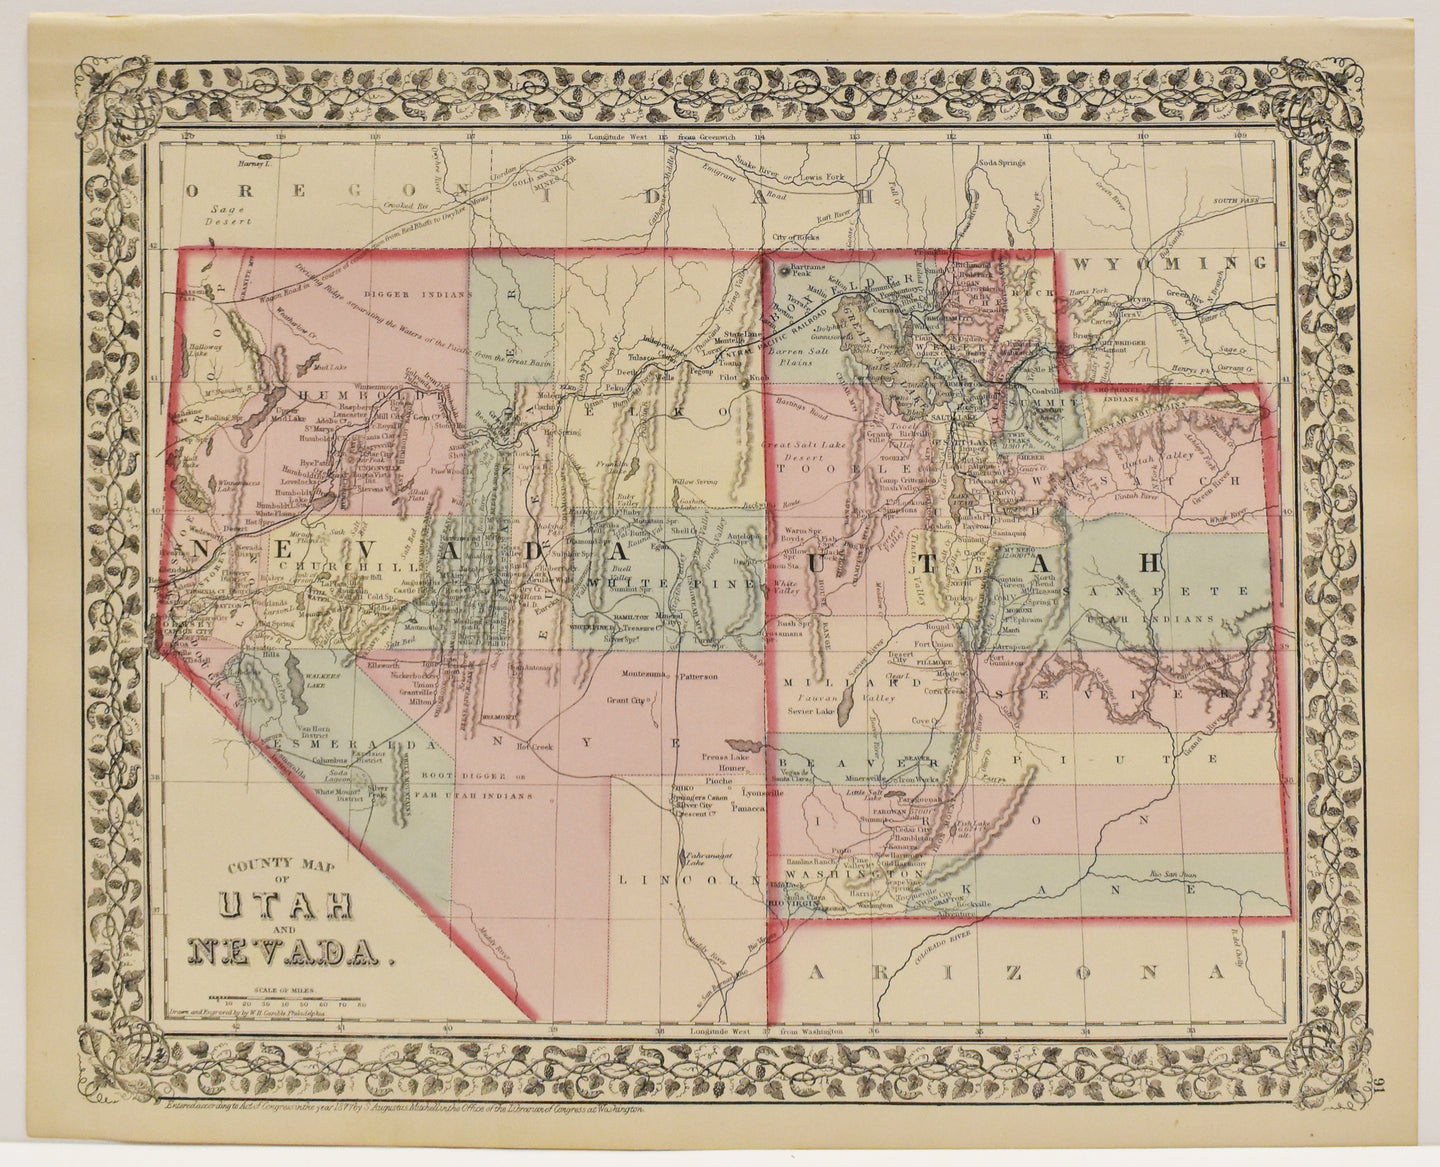 County Map of Utah and Nevada: Mitchell 1877